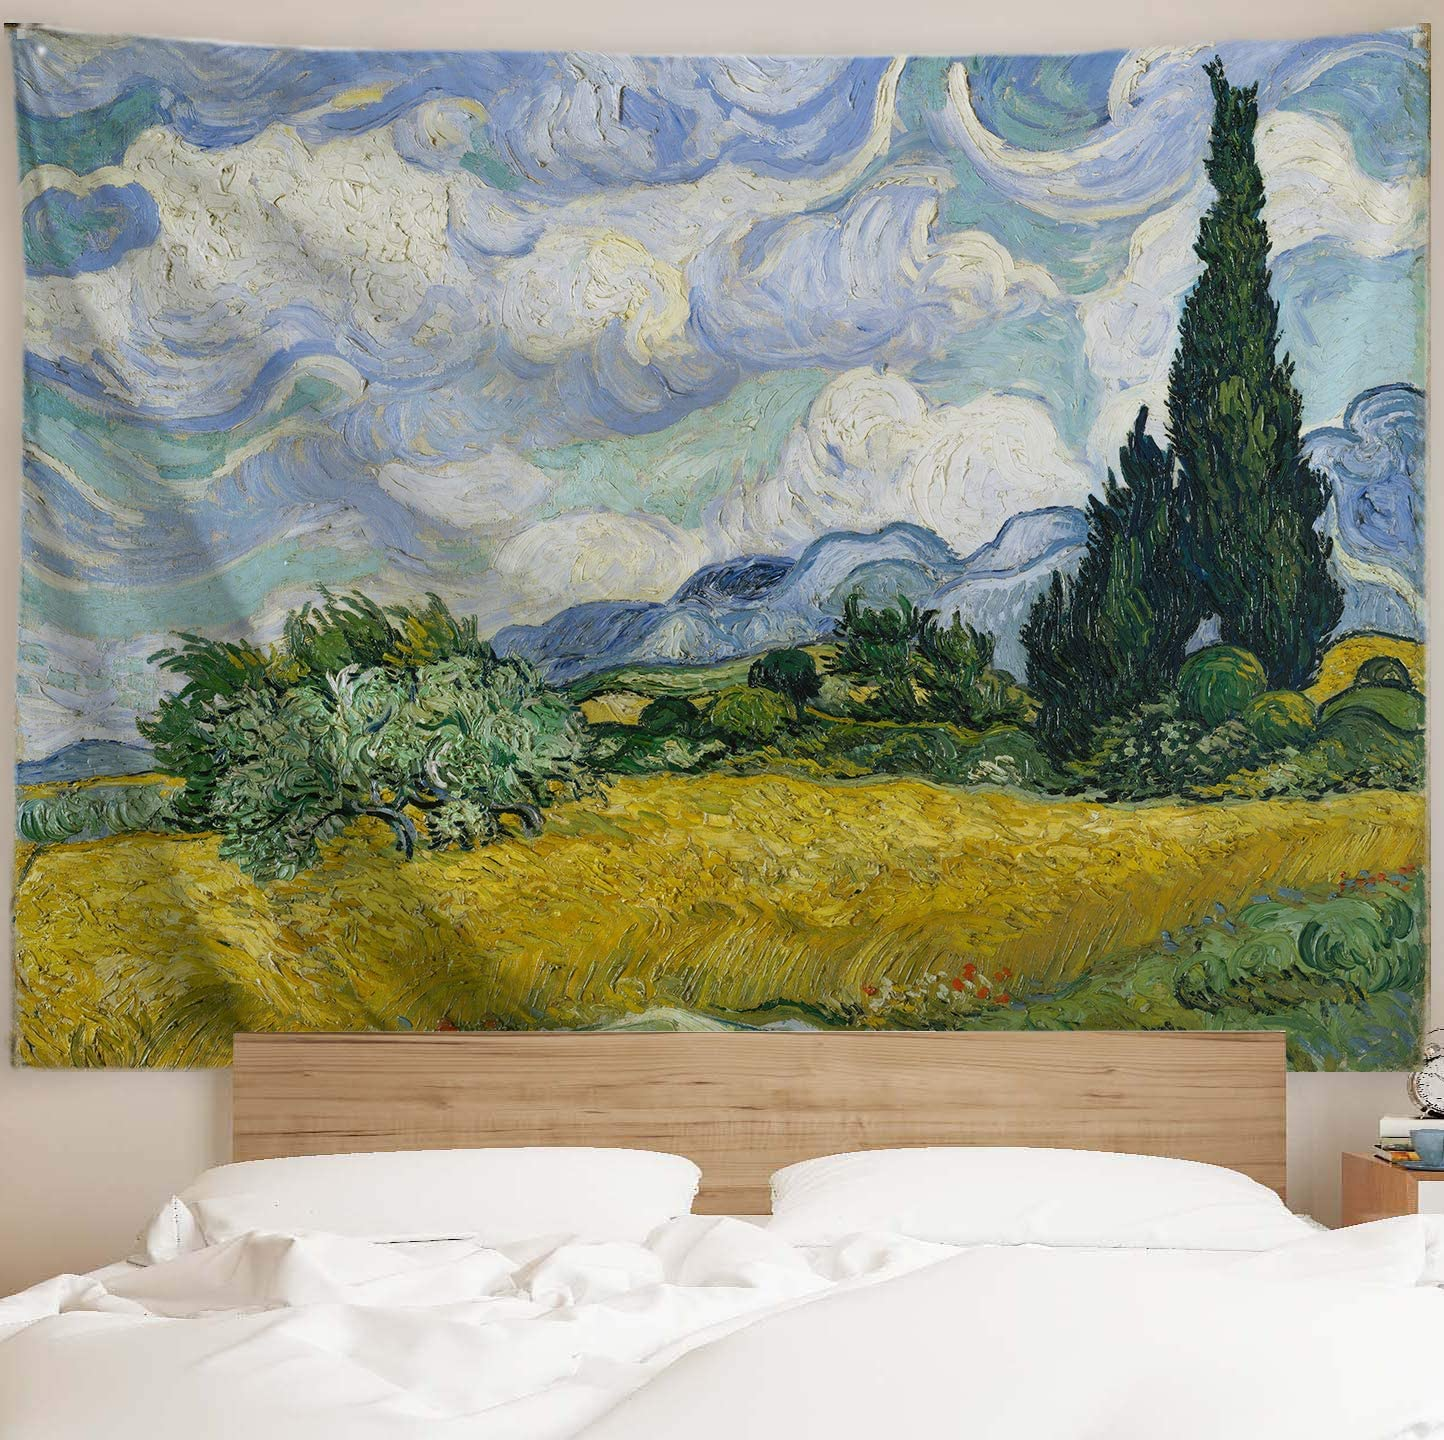 PROCIDA Van Gogh Tapestry Wall Hanging Wheat Field with Cypresses Oil Painting Nature Plant Floral Wall Art Home Decor for Dorm Bedroom Living Room, 90 W x 71 L, Wheat Field with Cypresses